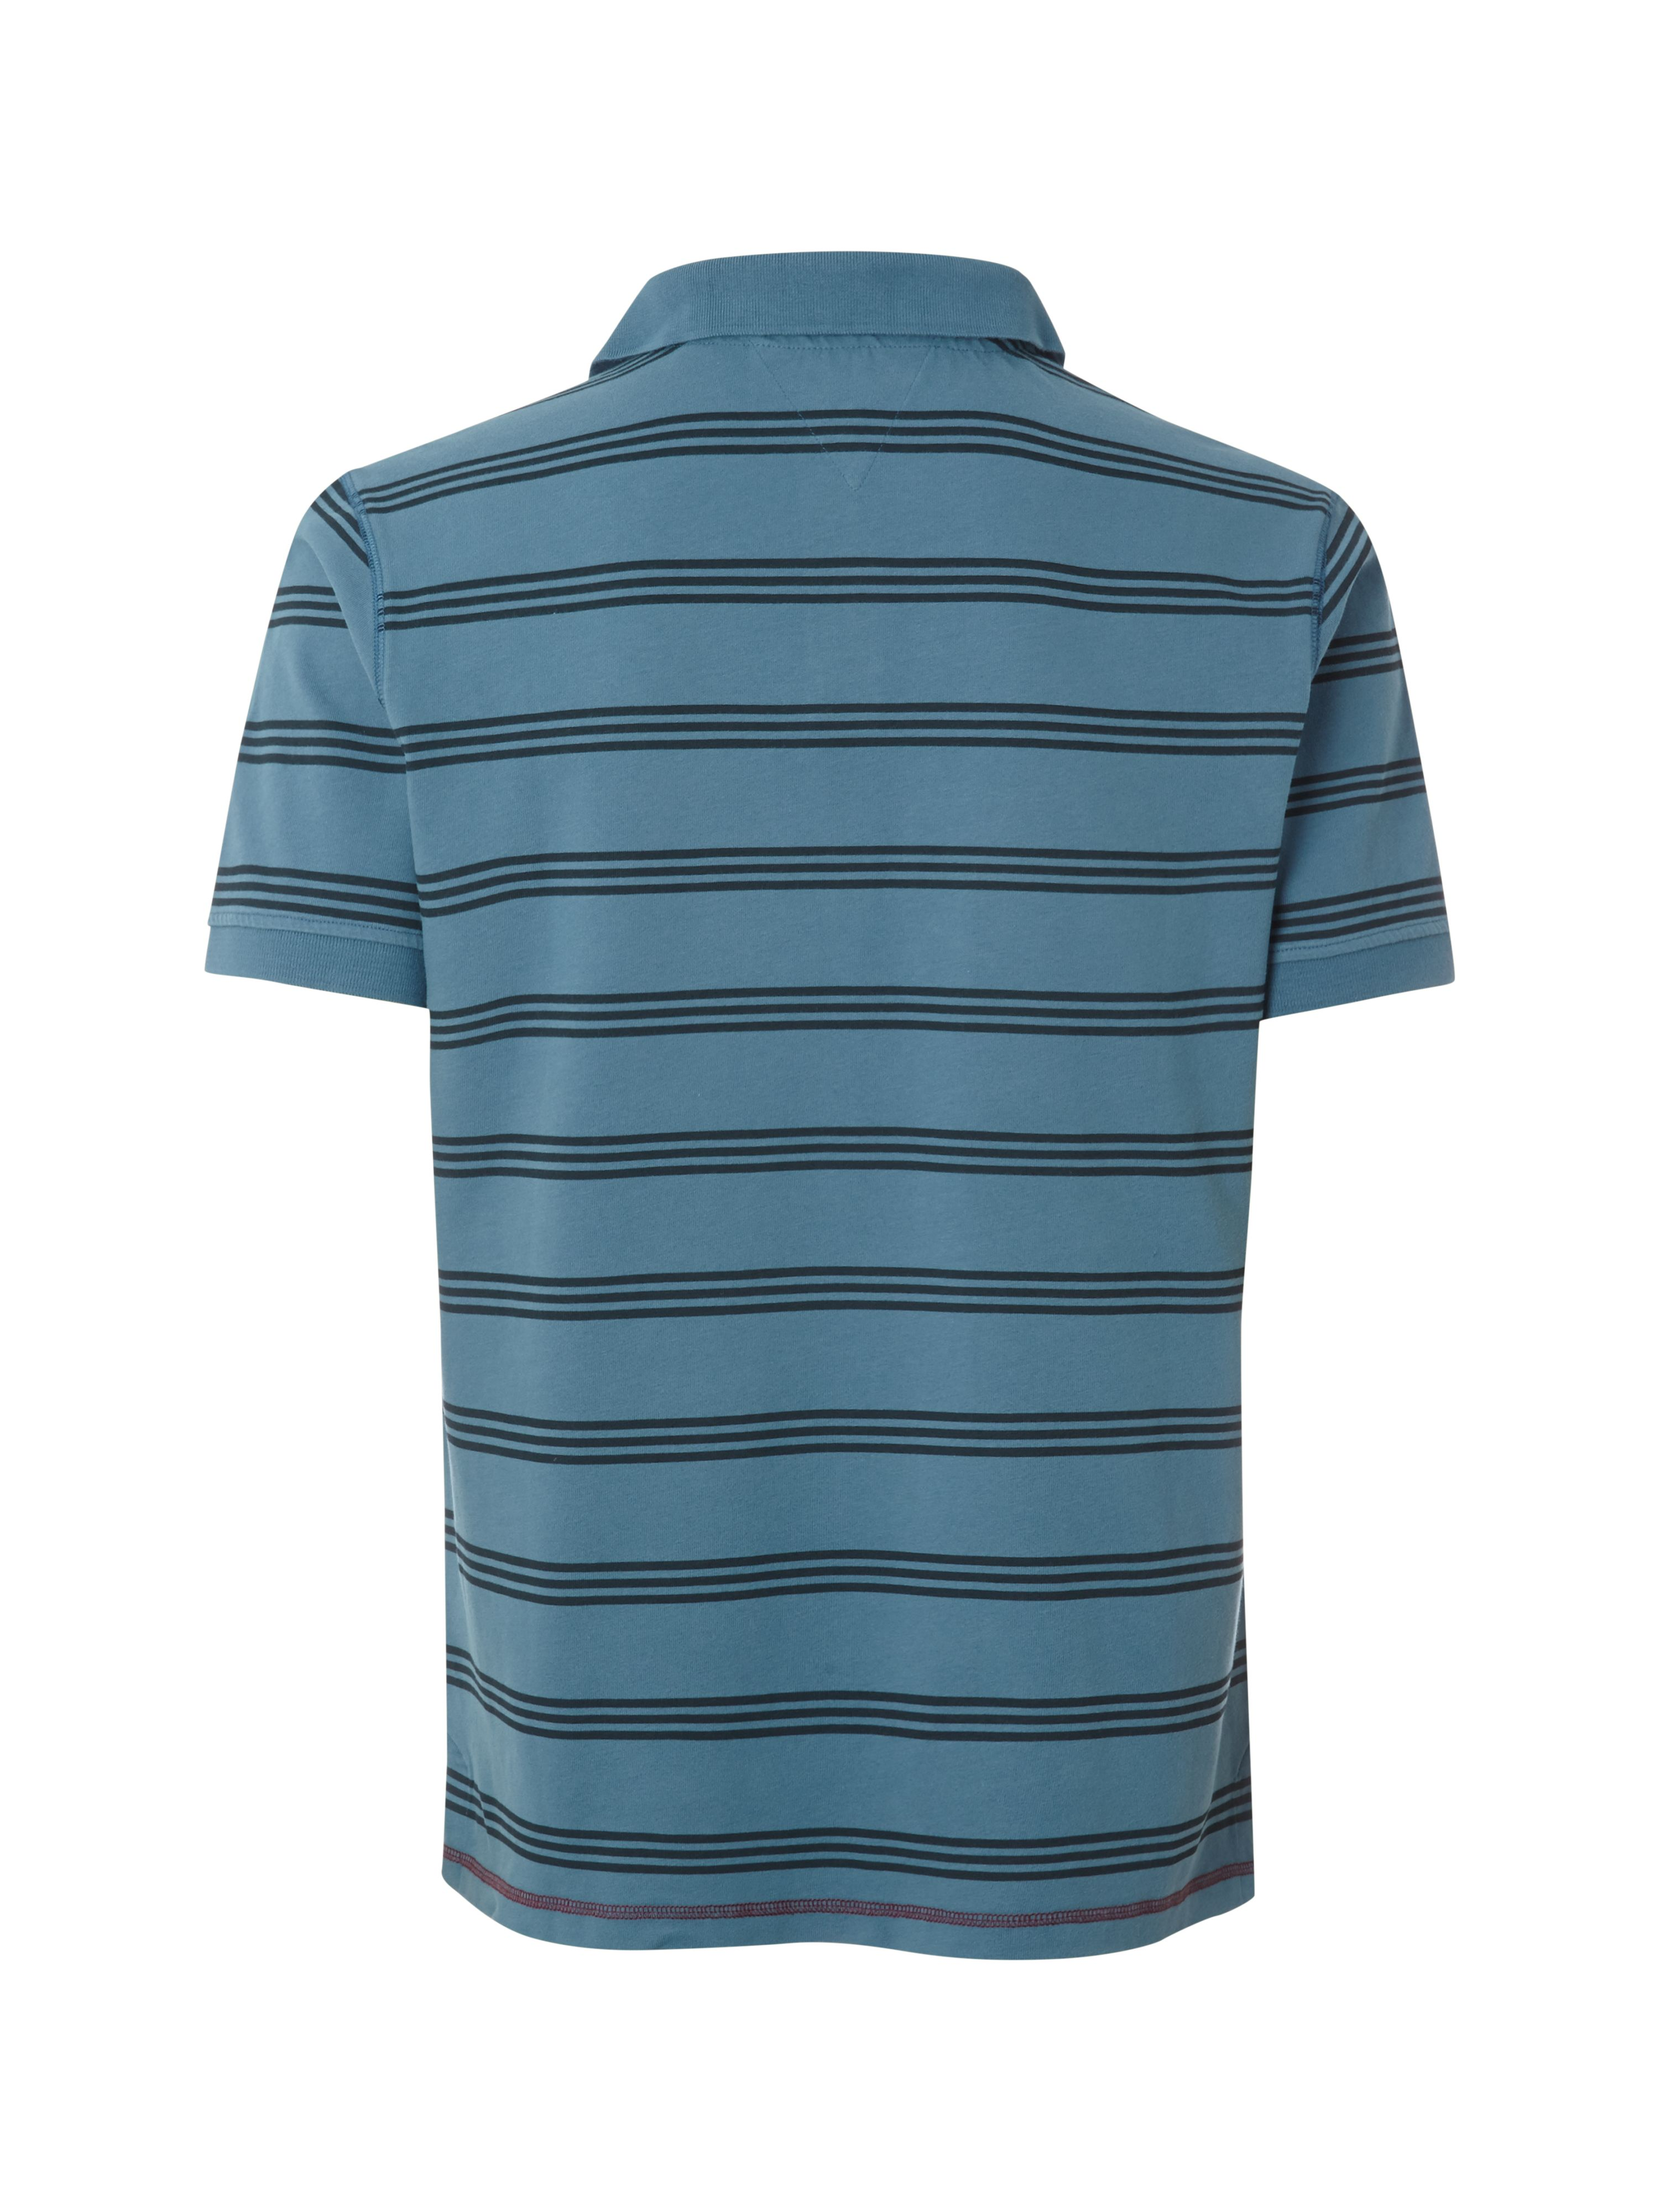 Barber polo shirt